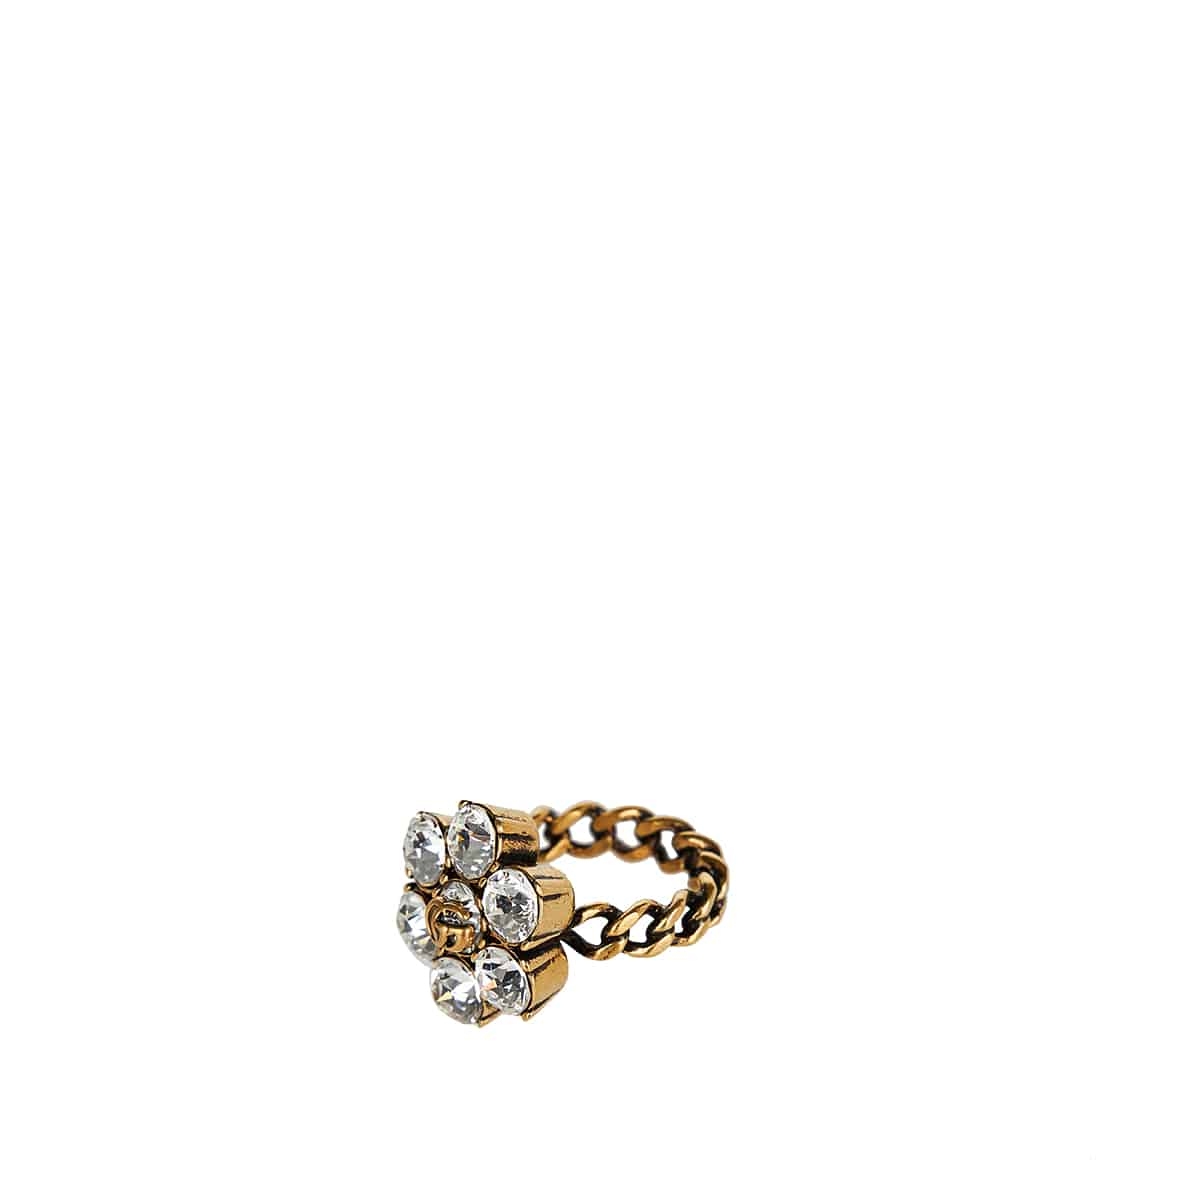 GG crystal and brass ring